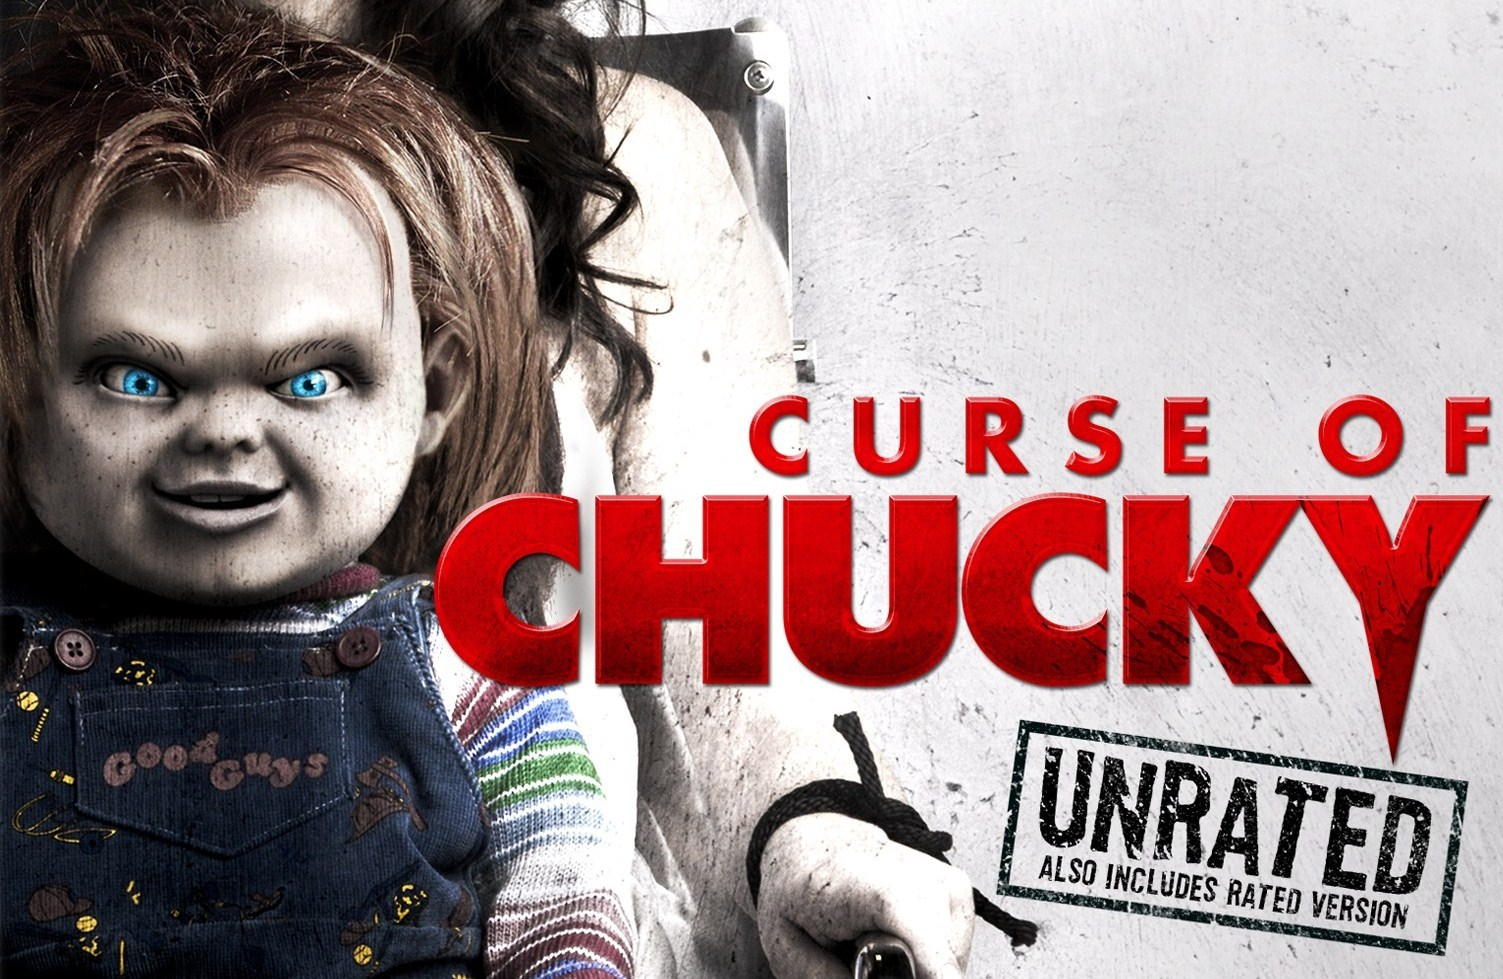 Curse of Chucky' Is Gonna Get You… Excited for Oct. Release!